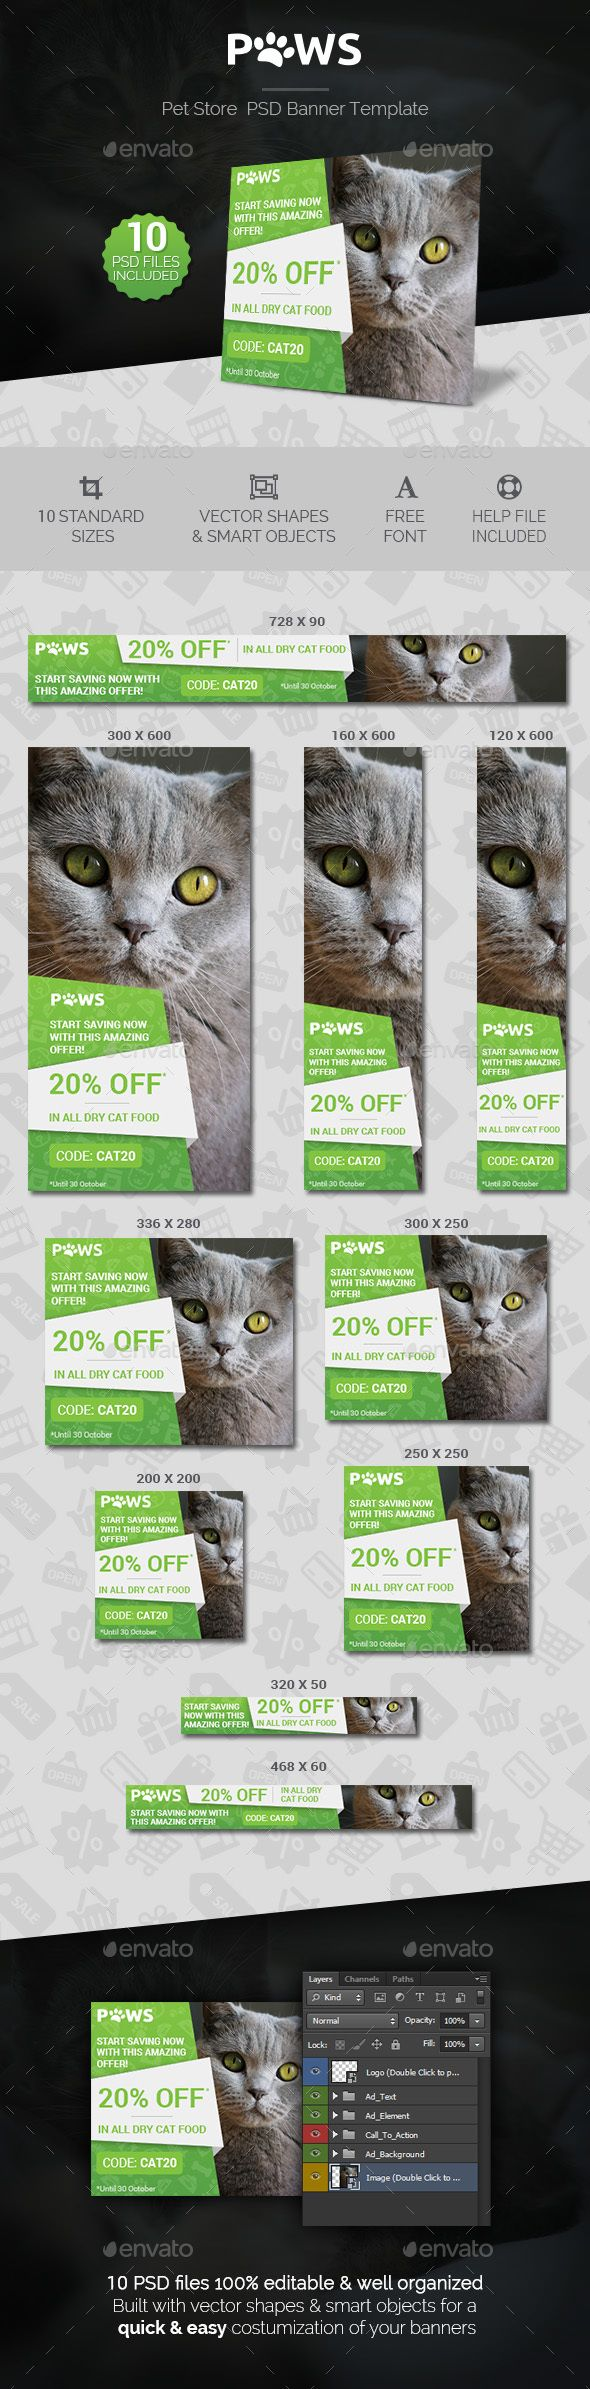 Paws - Pet Store PSD Banner Template | Banner template, Banners and ...